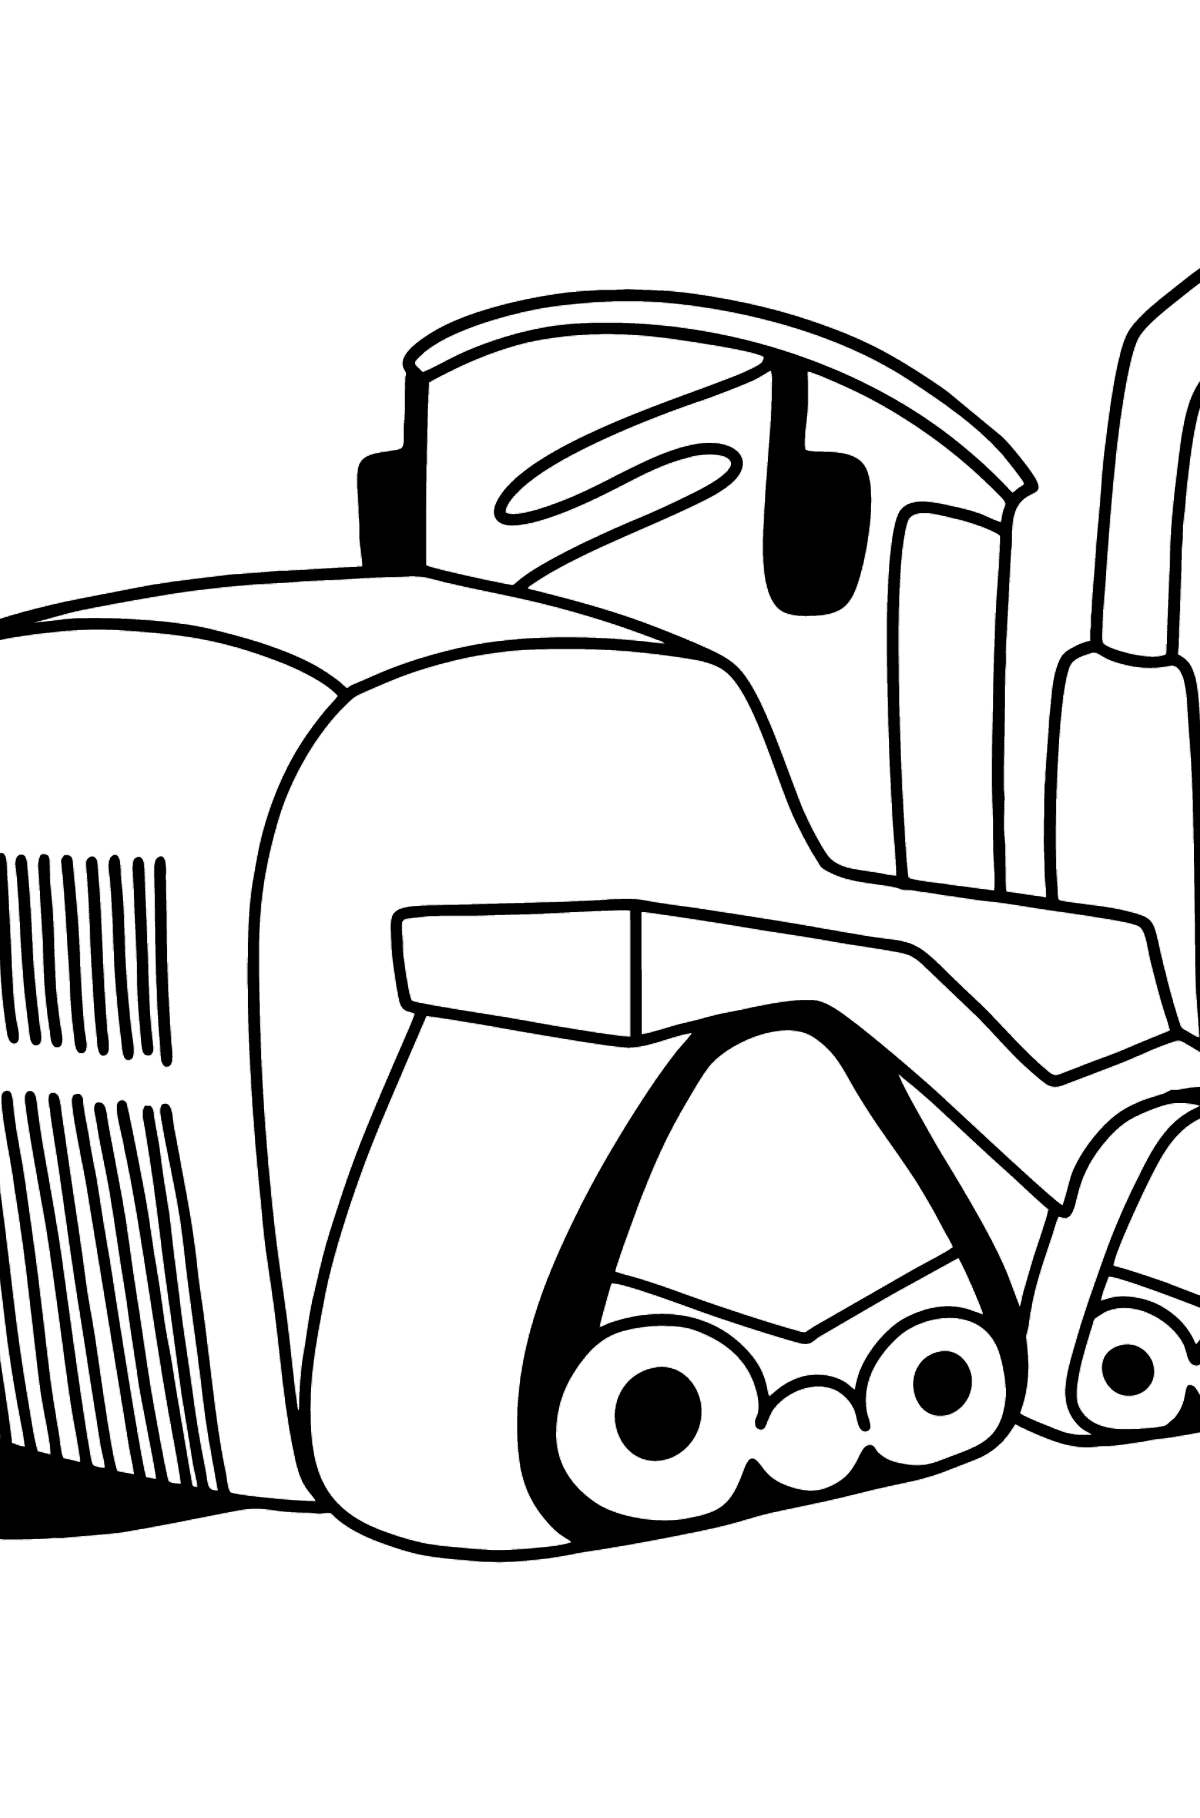 Big Heavy Tractor coloring page - Coloring Pages for Kids